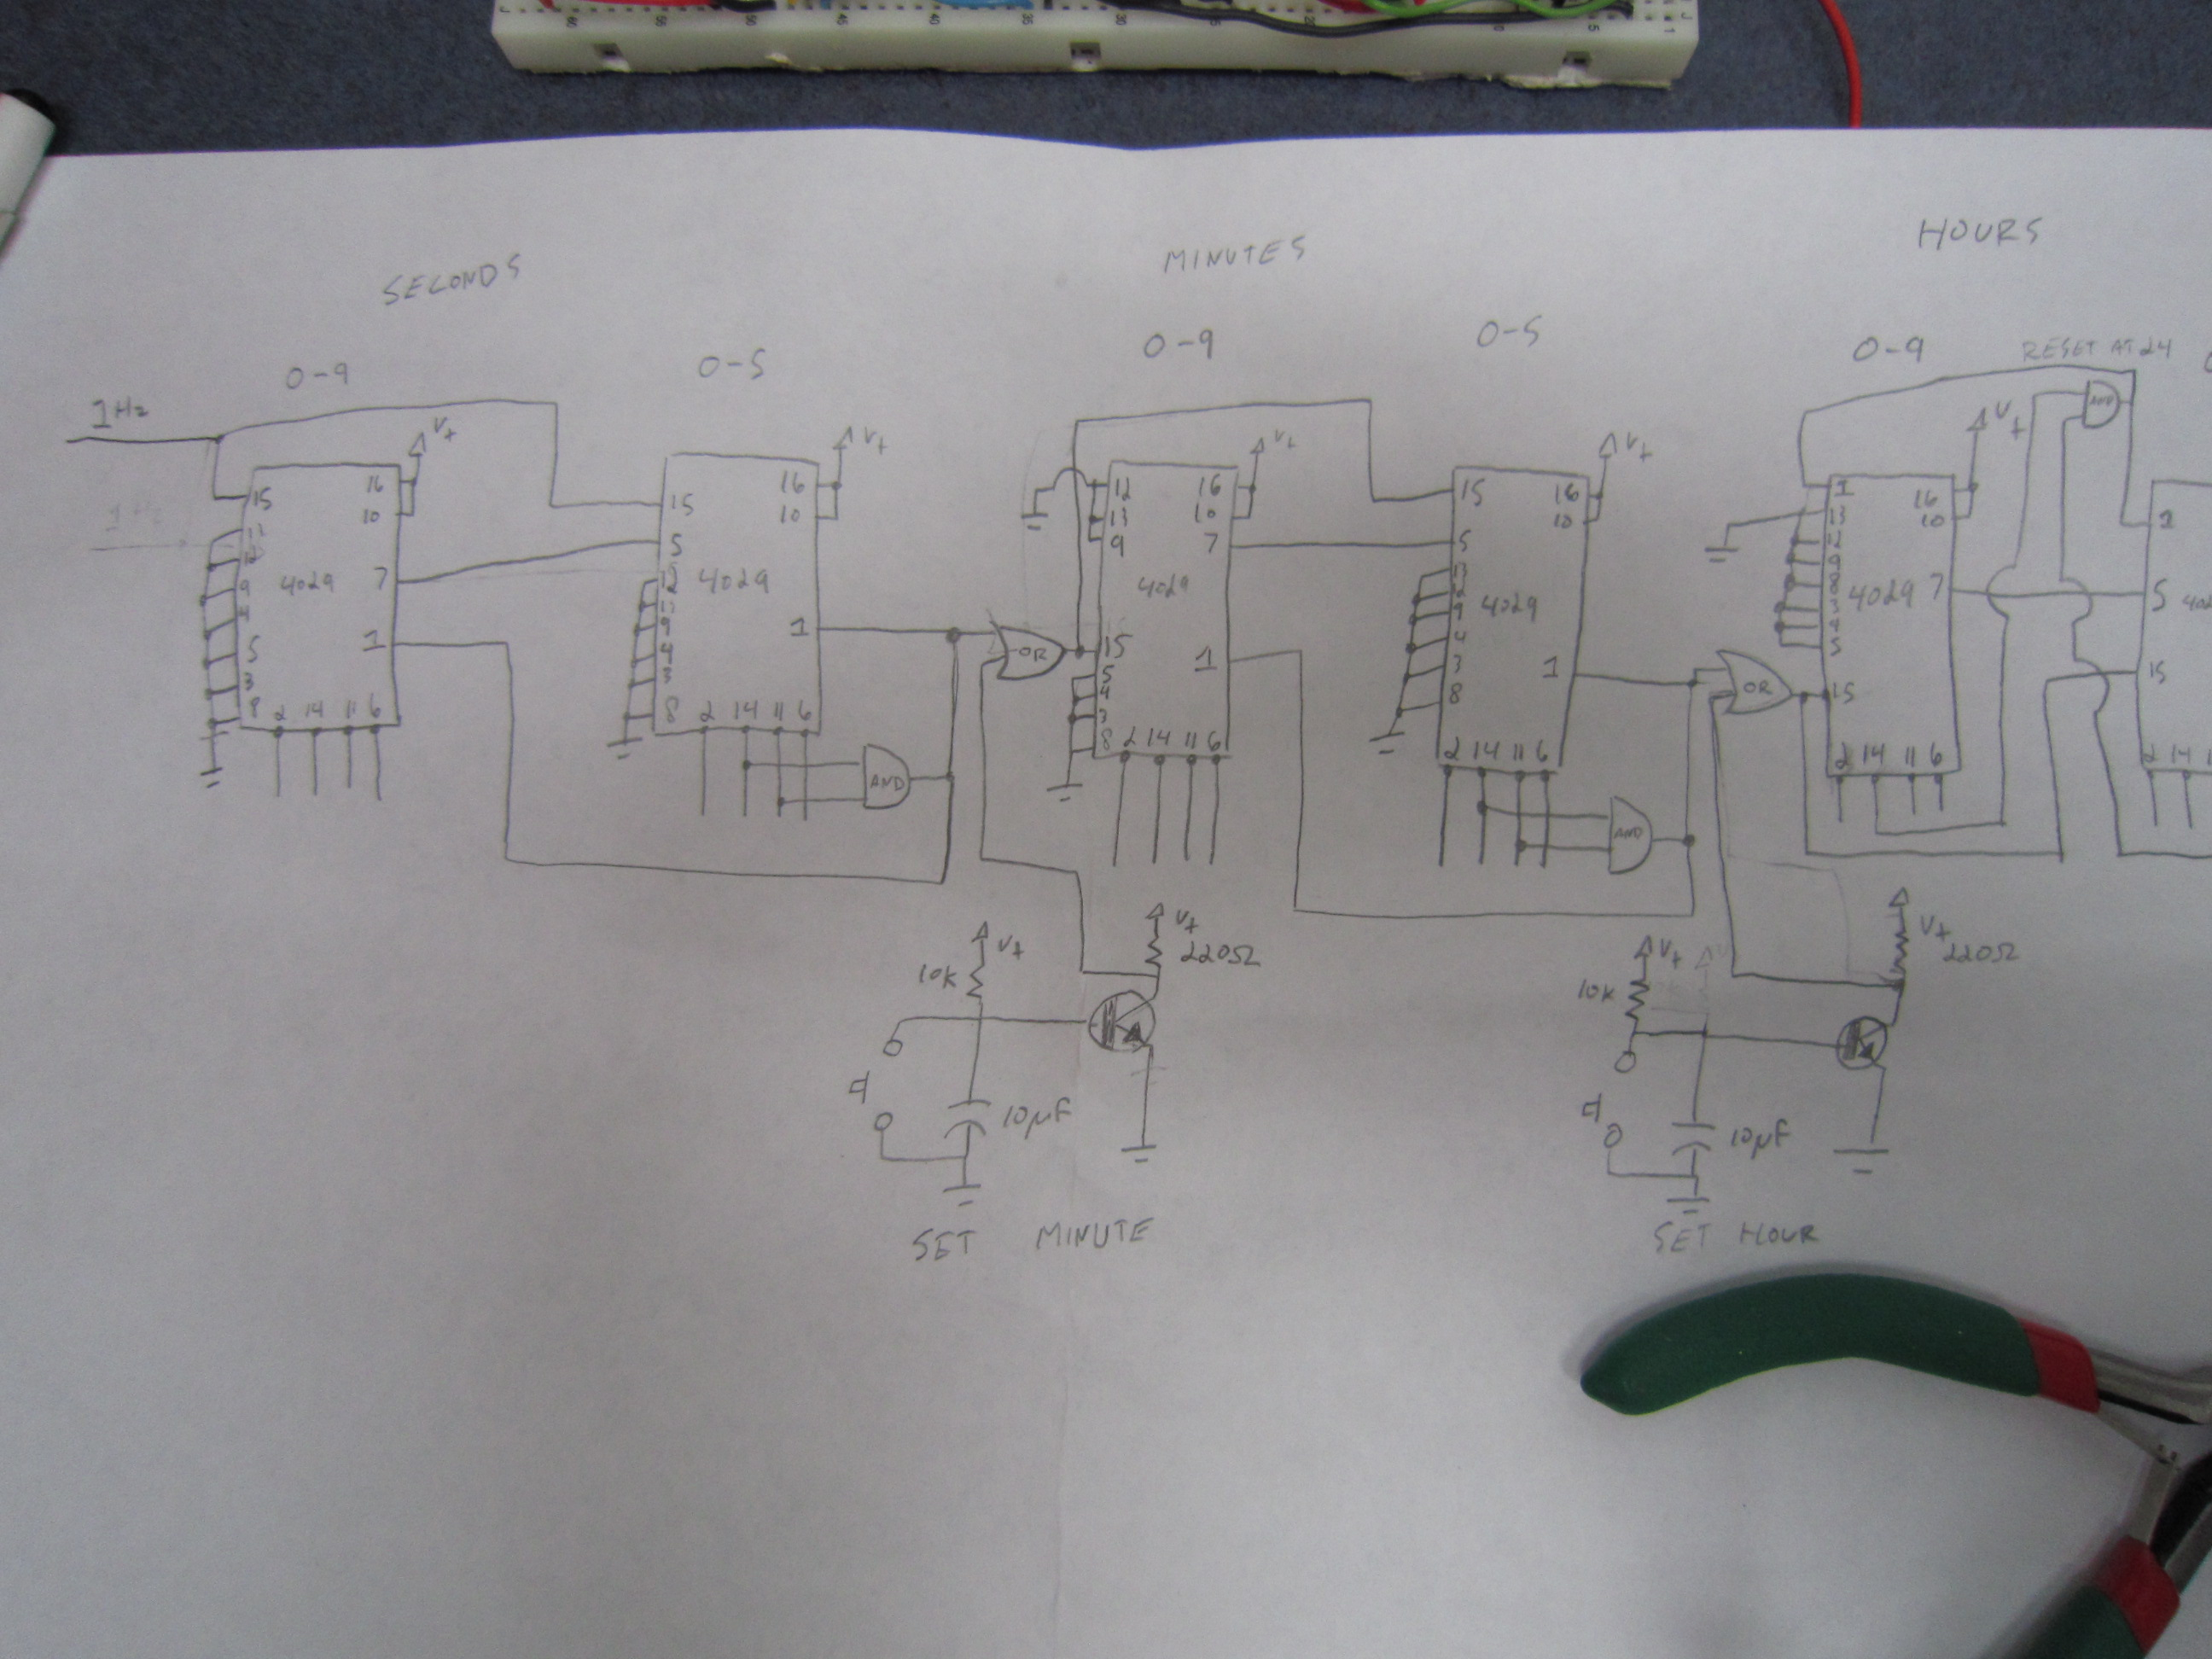 4000 Series Cmos 24 Hour Clock Eastons Stuff 7 Segment Circuit Diagram The Above Image Was Basis Of Not Shown A 4060 And 4013 Ic To Make Nice 1hz Signal Which We Can Use For Seconds